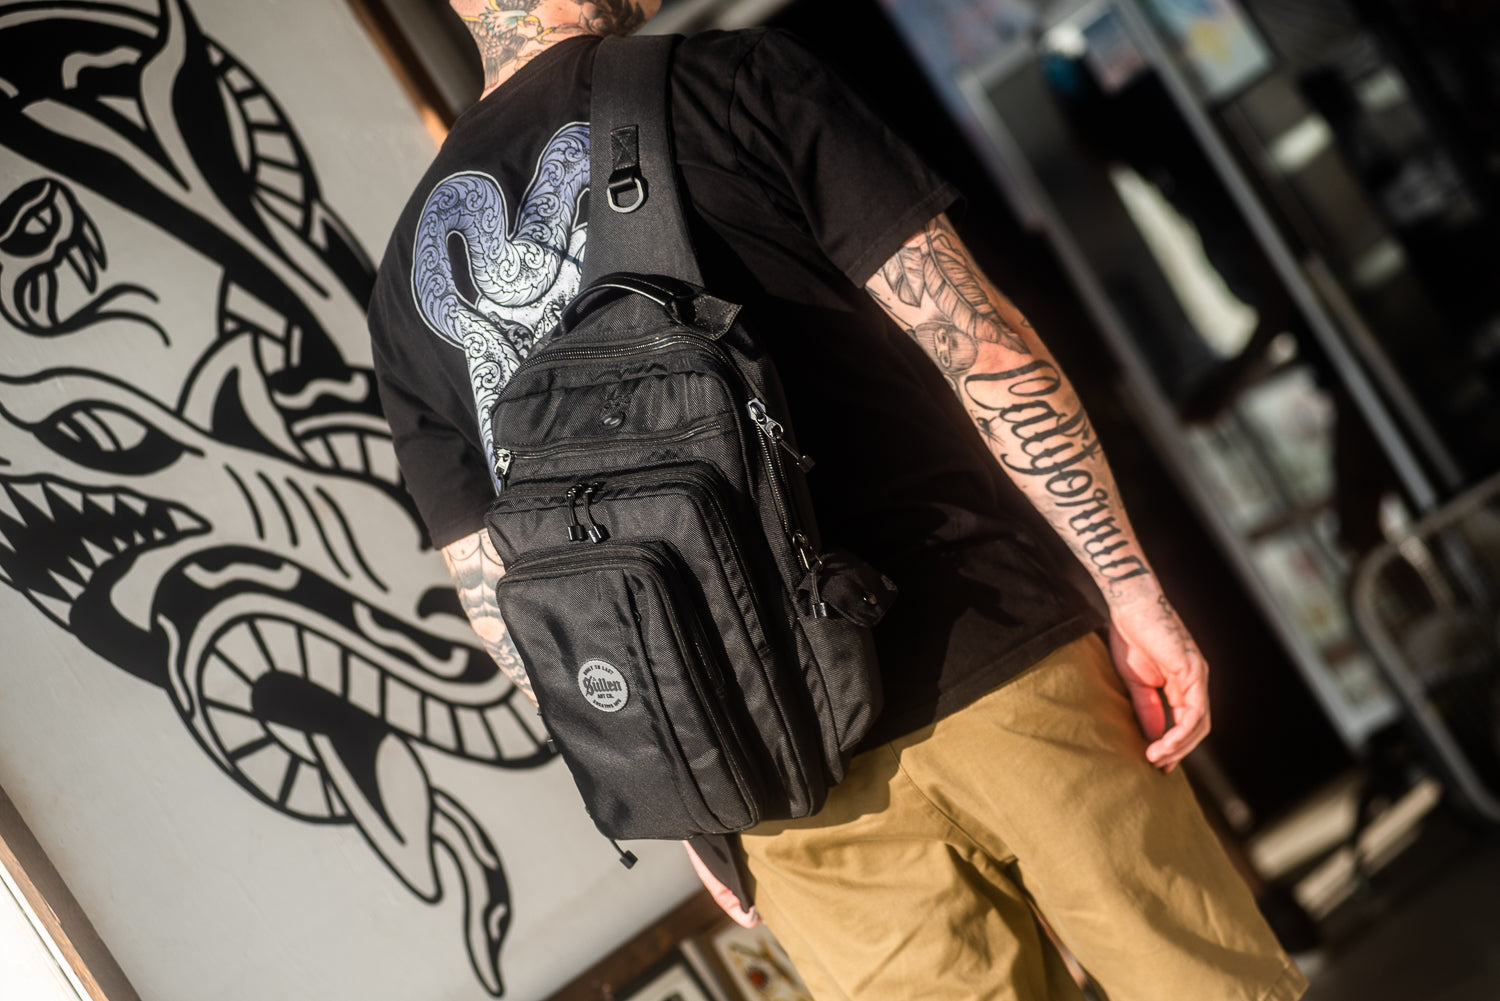 Blaq Paq - Tattoo travel bags